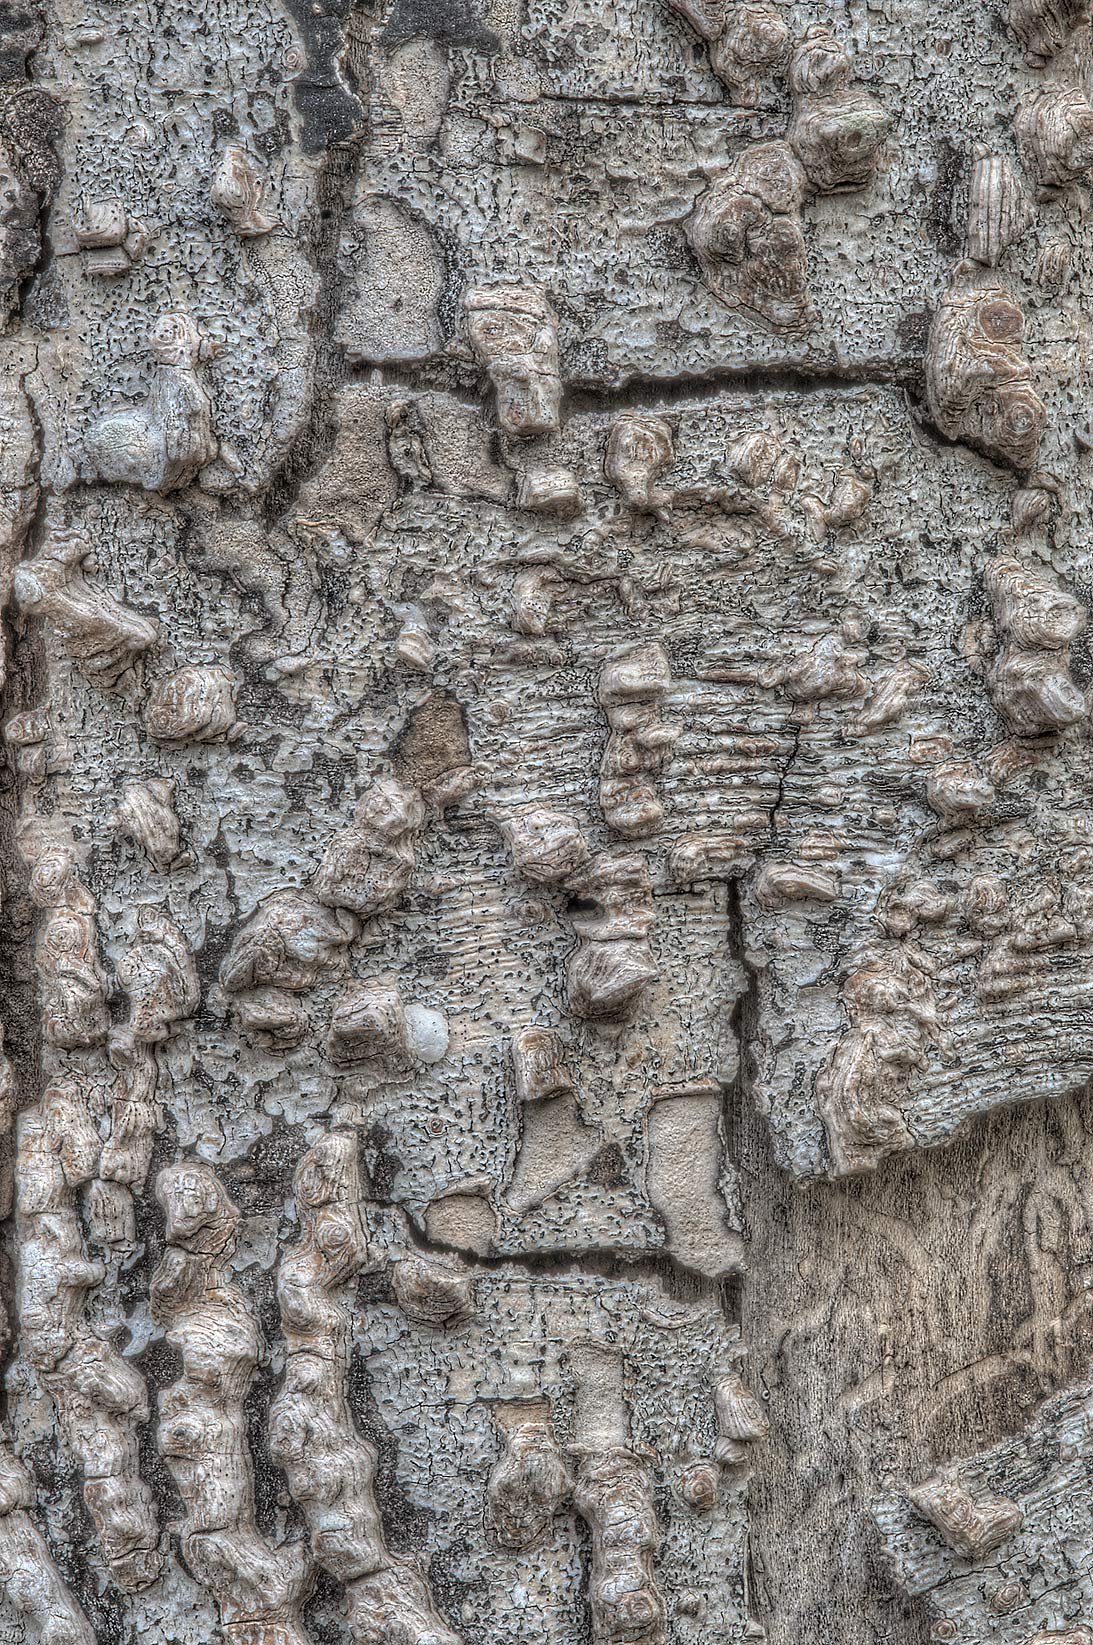 Bark of dry hackberry (Celtis occidentalis) in...State Historic Site. Washington, Texas